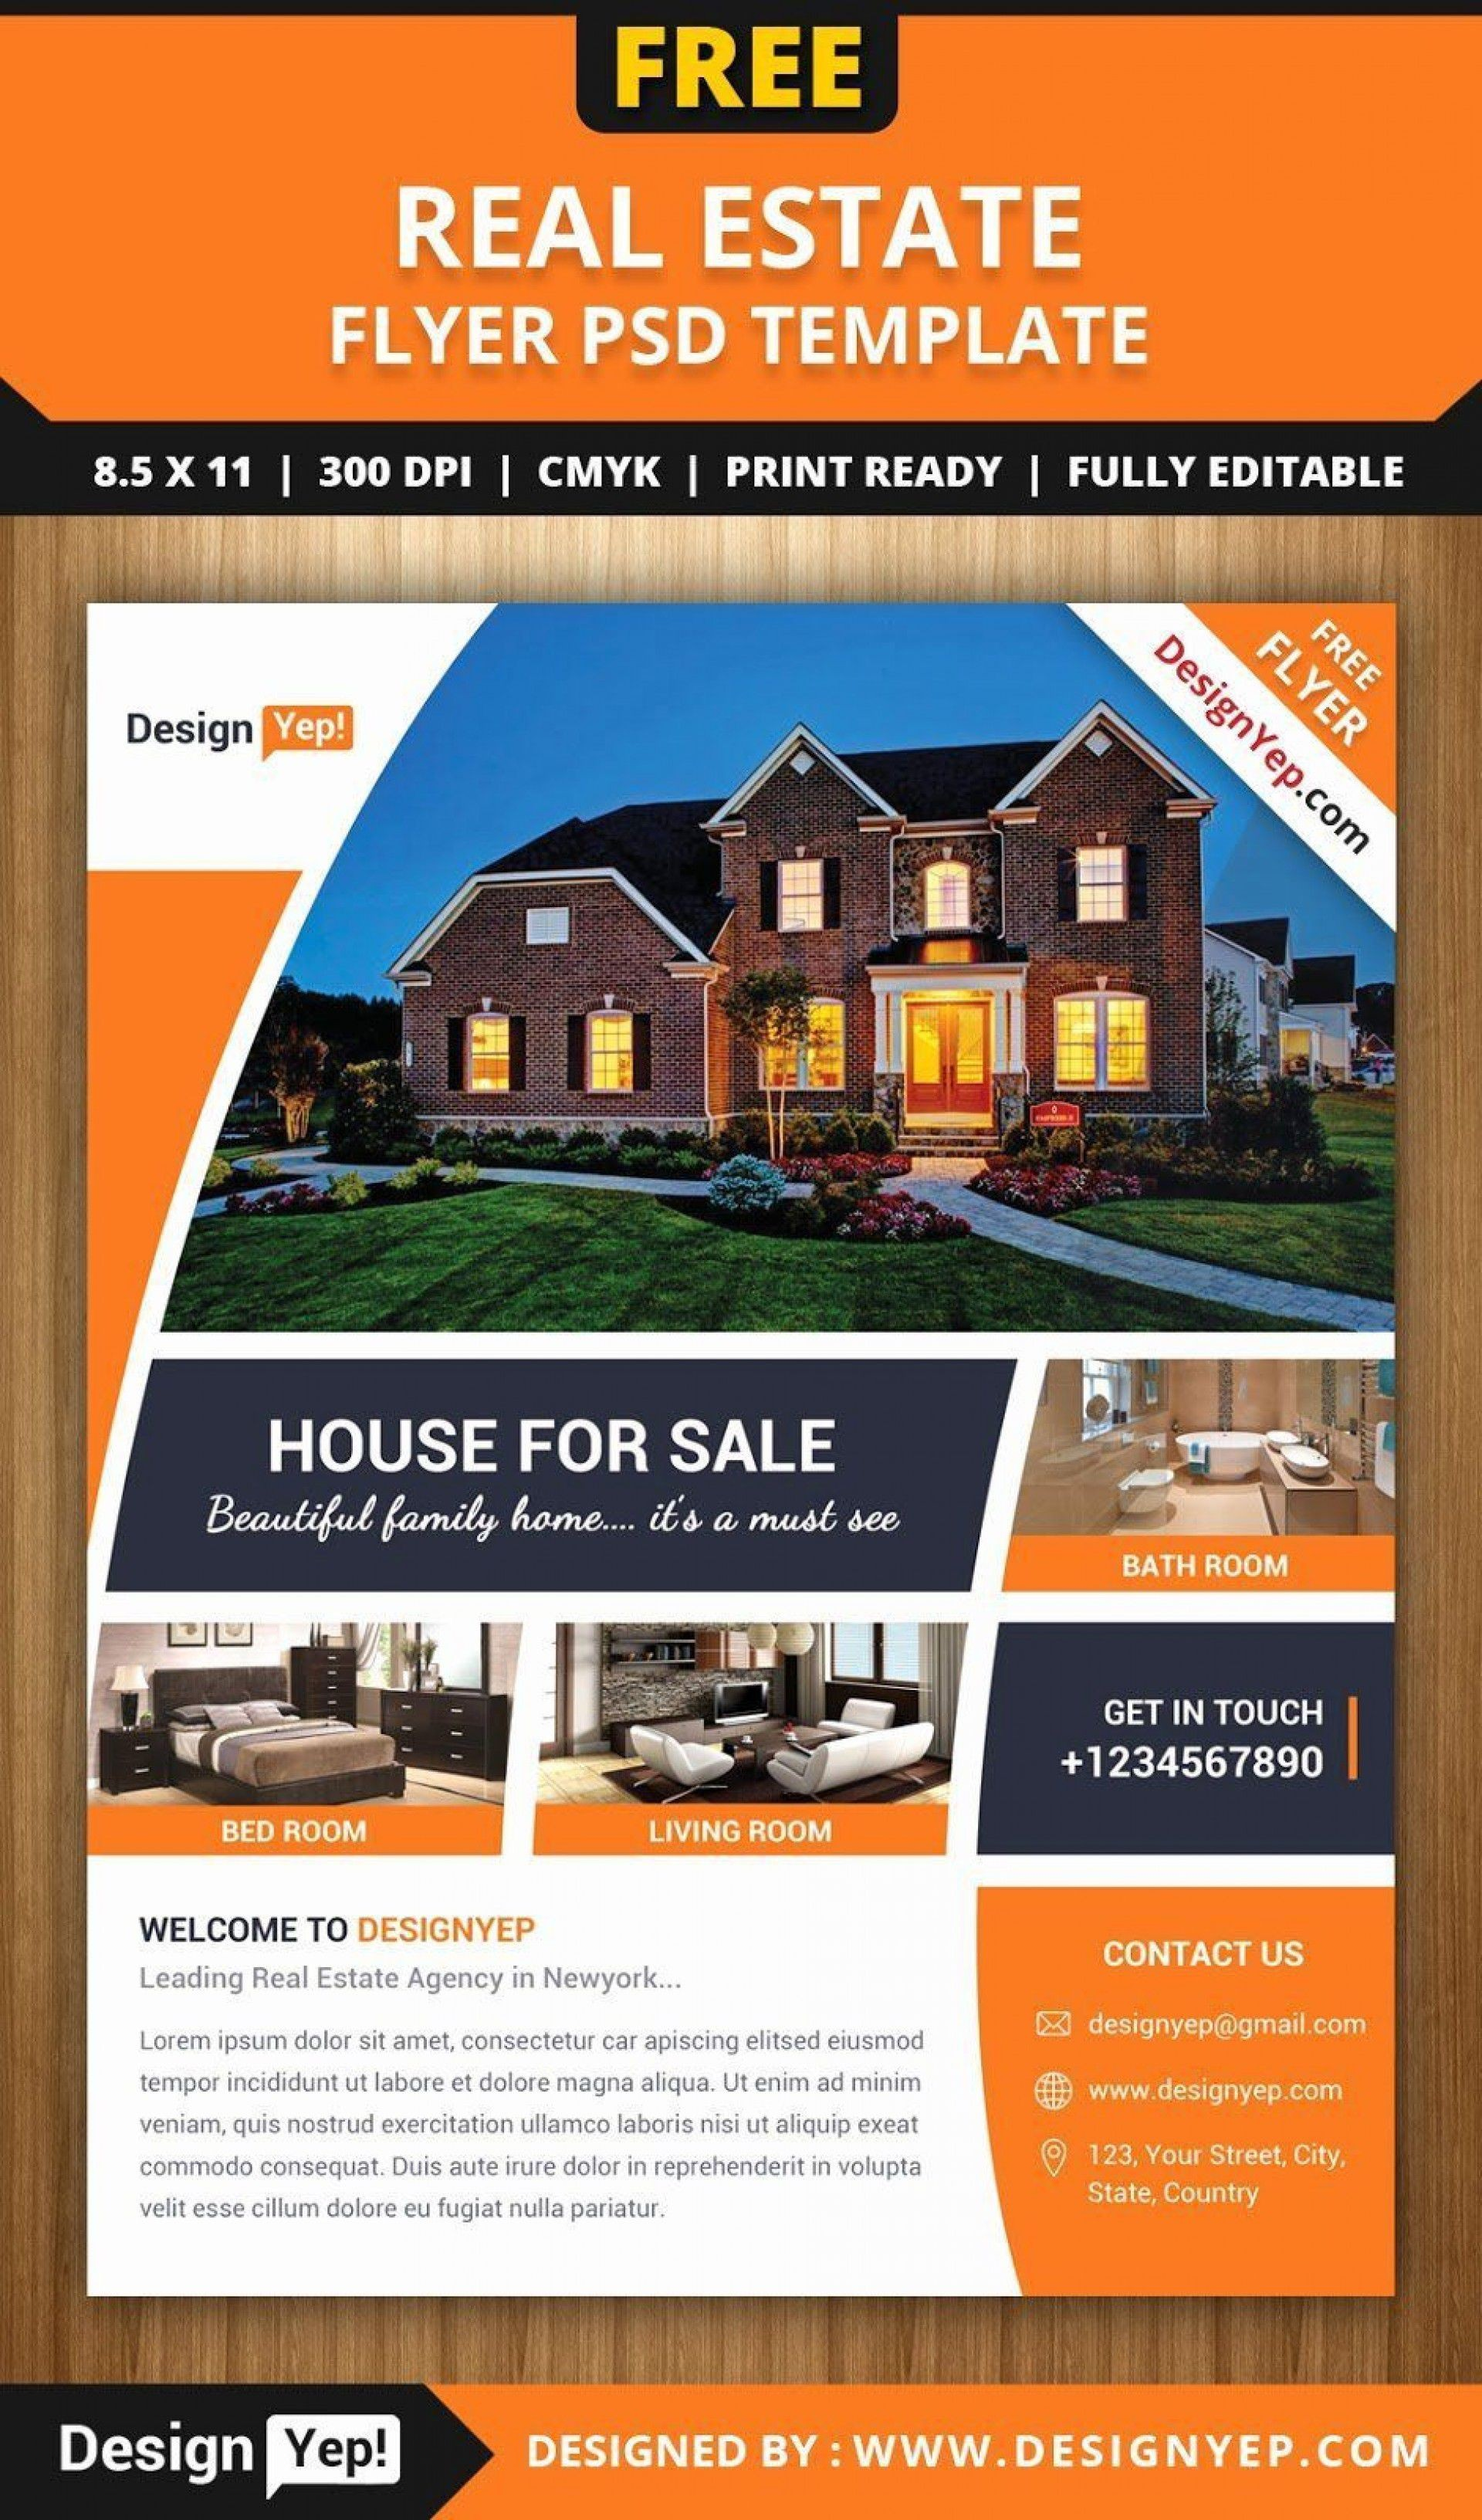 000 Sensational Real Estate Flyer Template Free Concept  Publisher Commercial Pdf Download1920